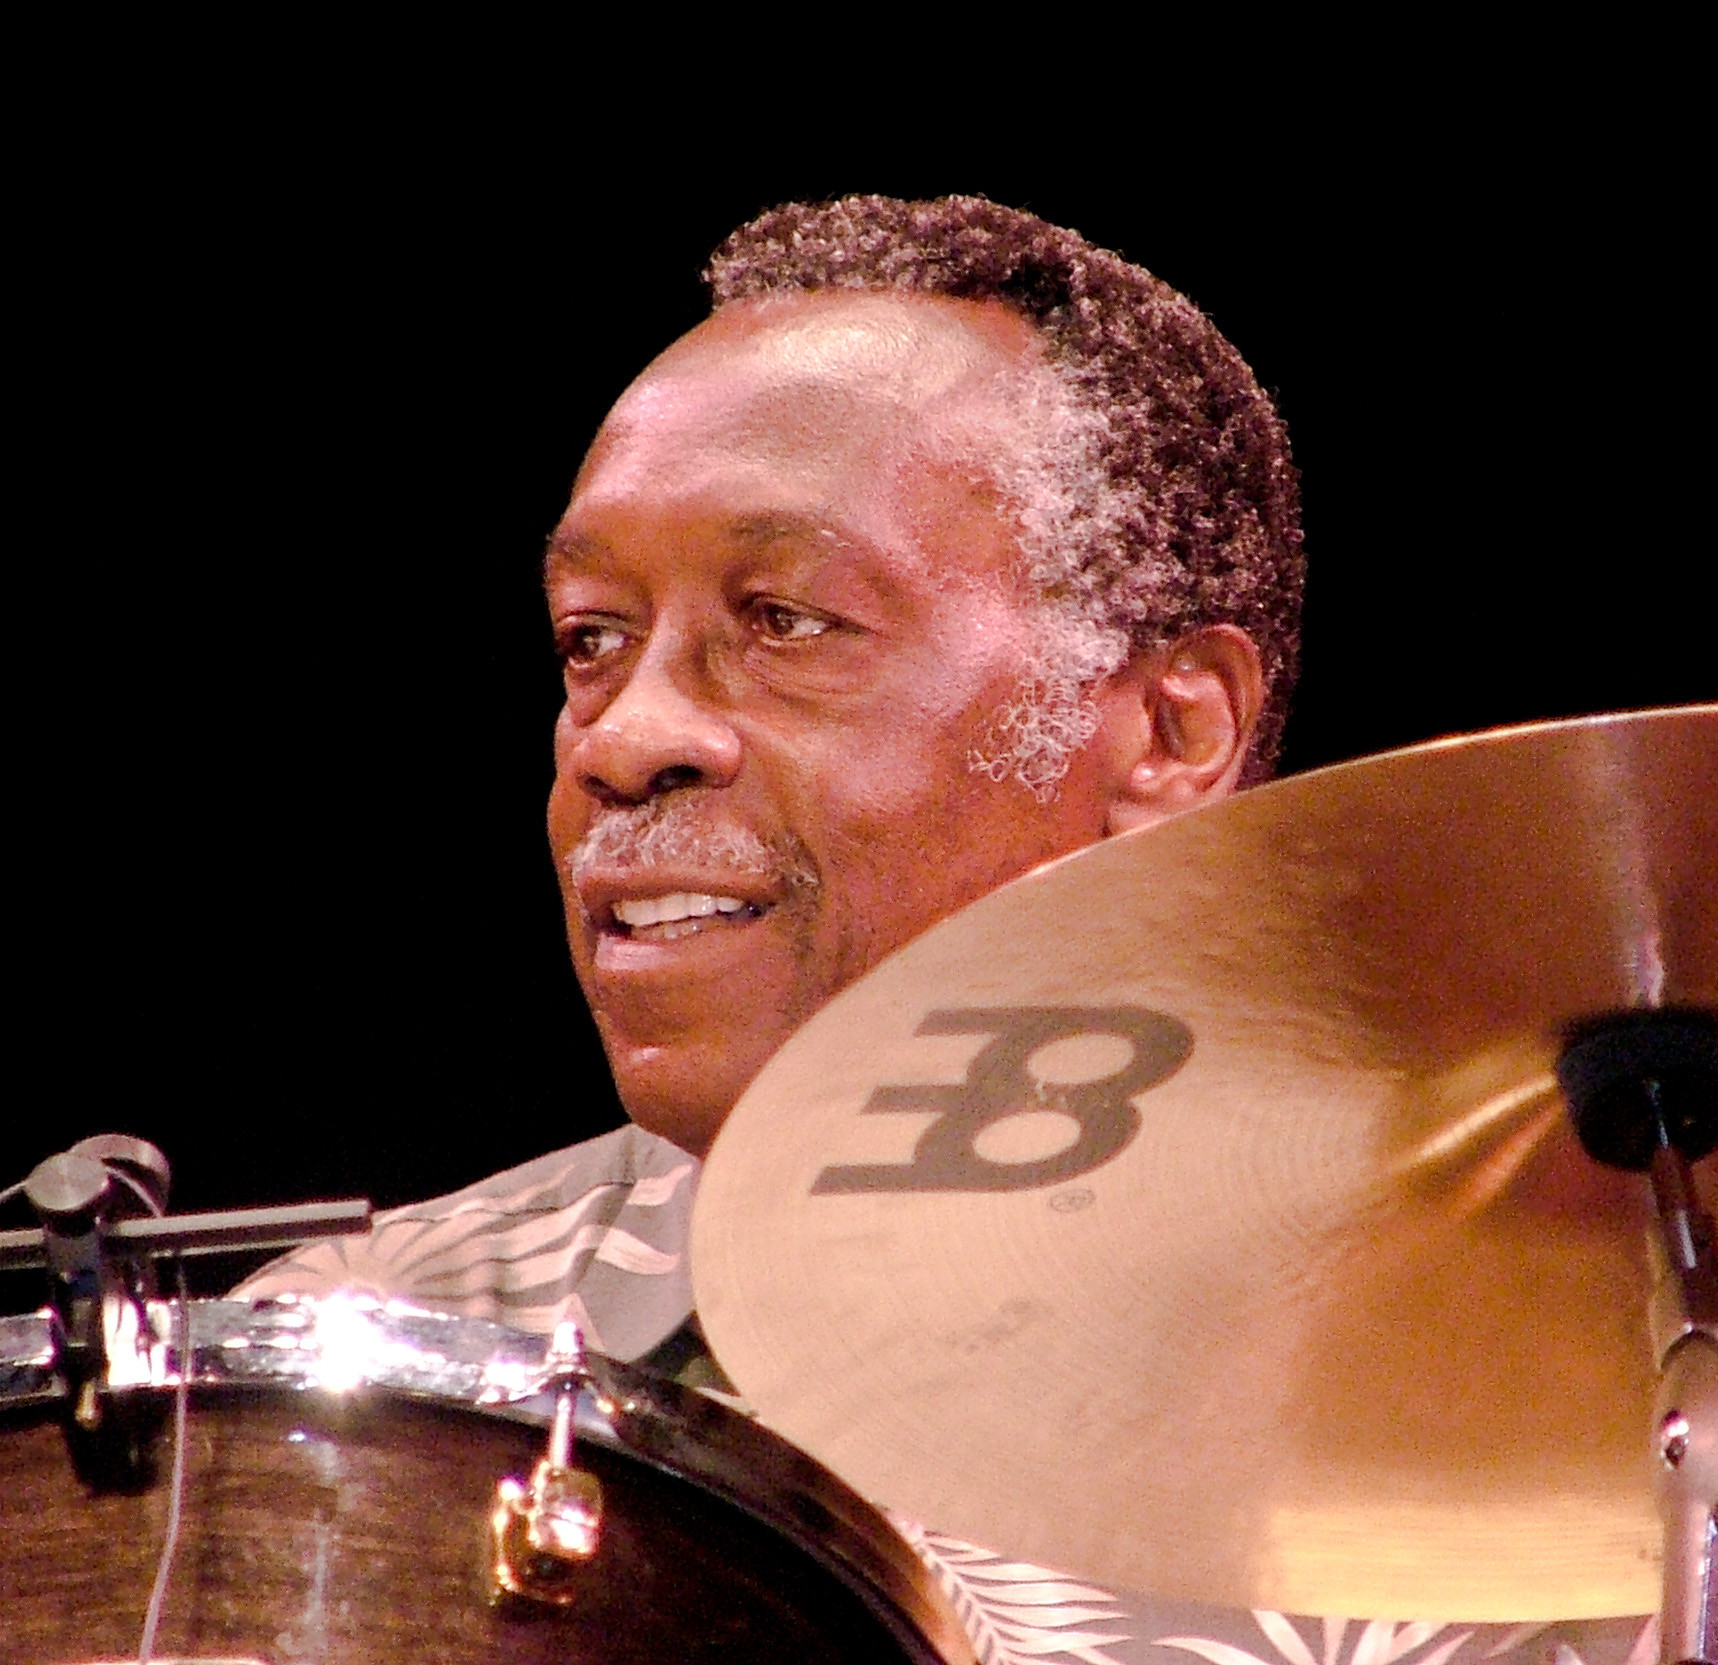 Clyde Stubblefield june 24 2005